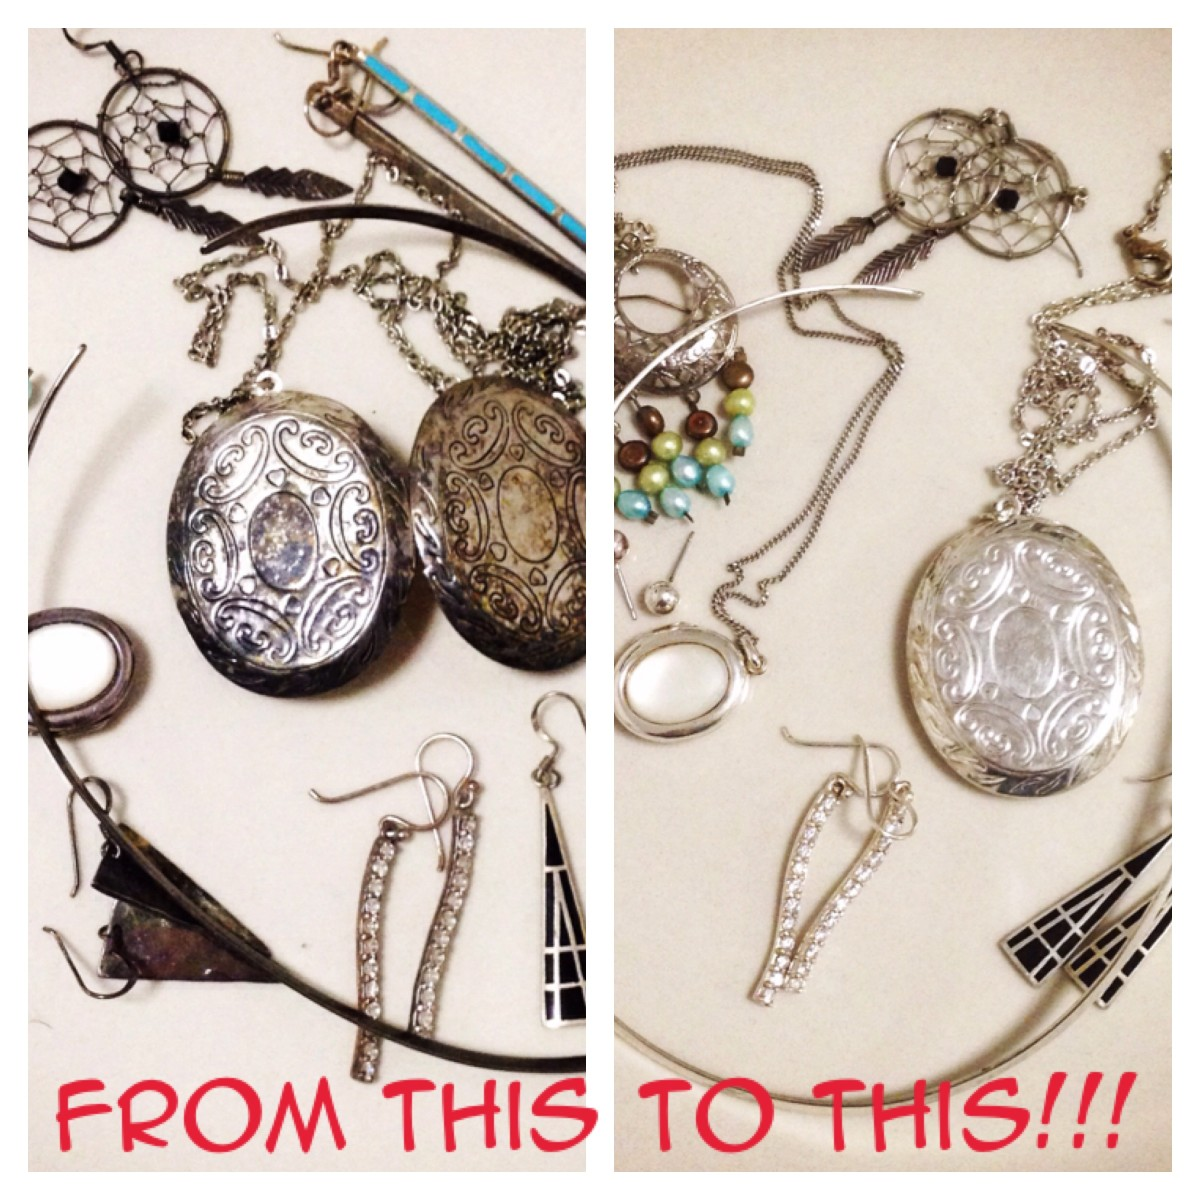 How to clean tarnished silver jewelry with items from your ...